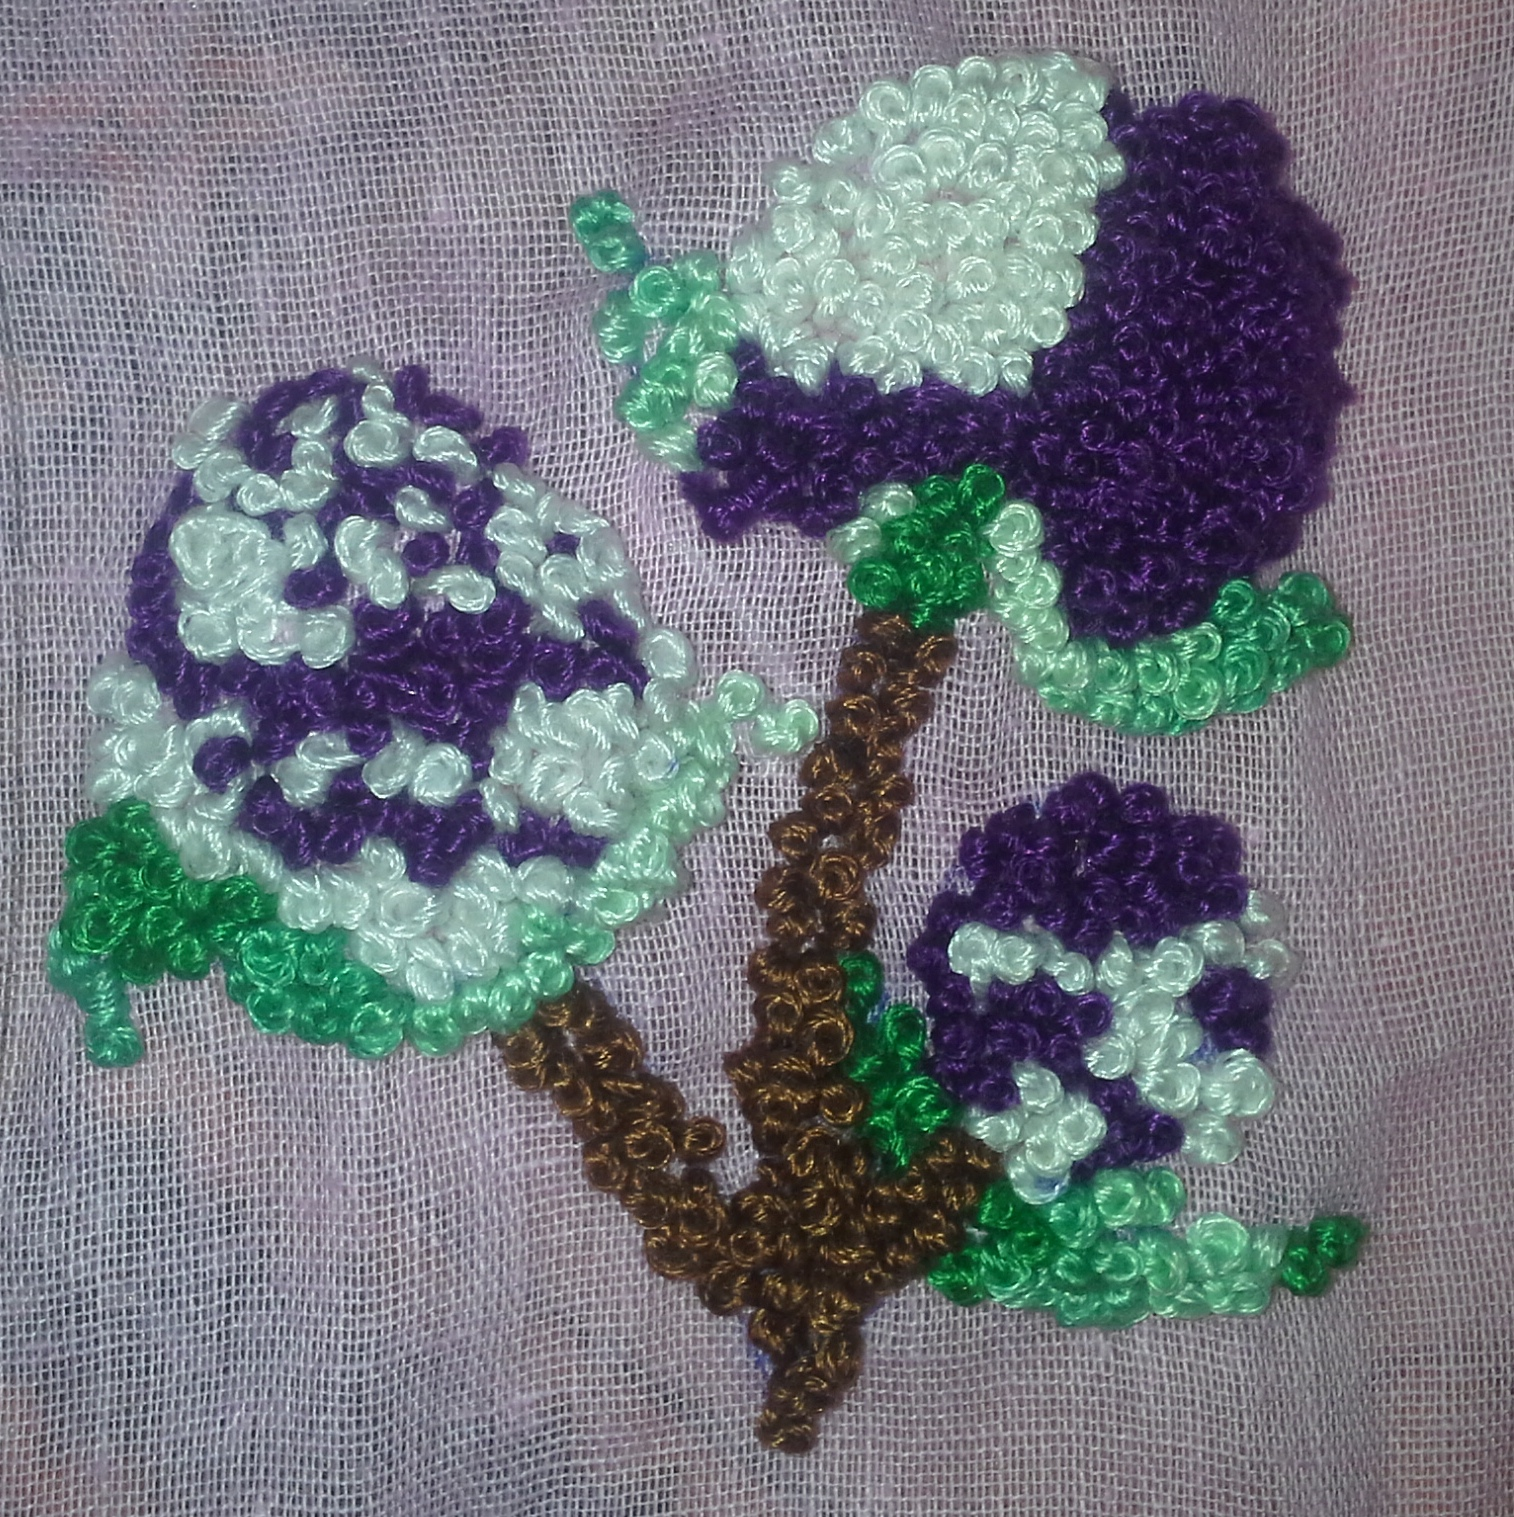 French Knot Sarahs Hand Embroidery Tutorials